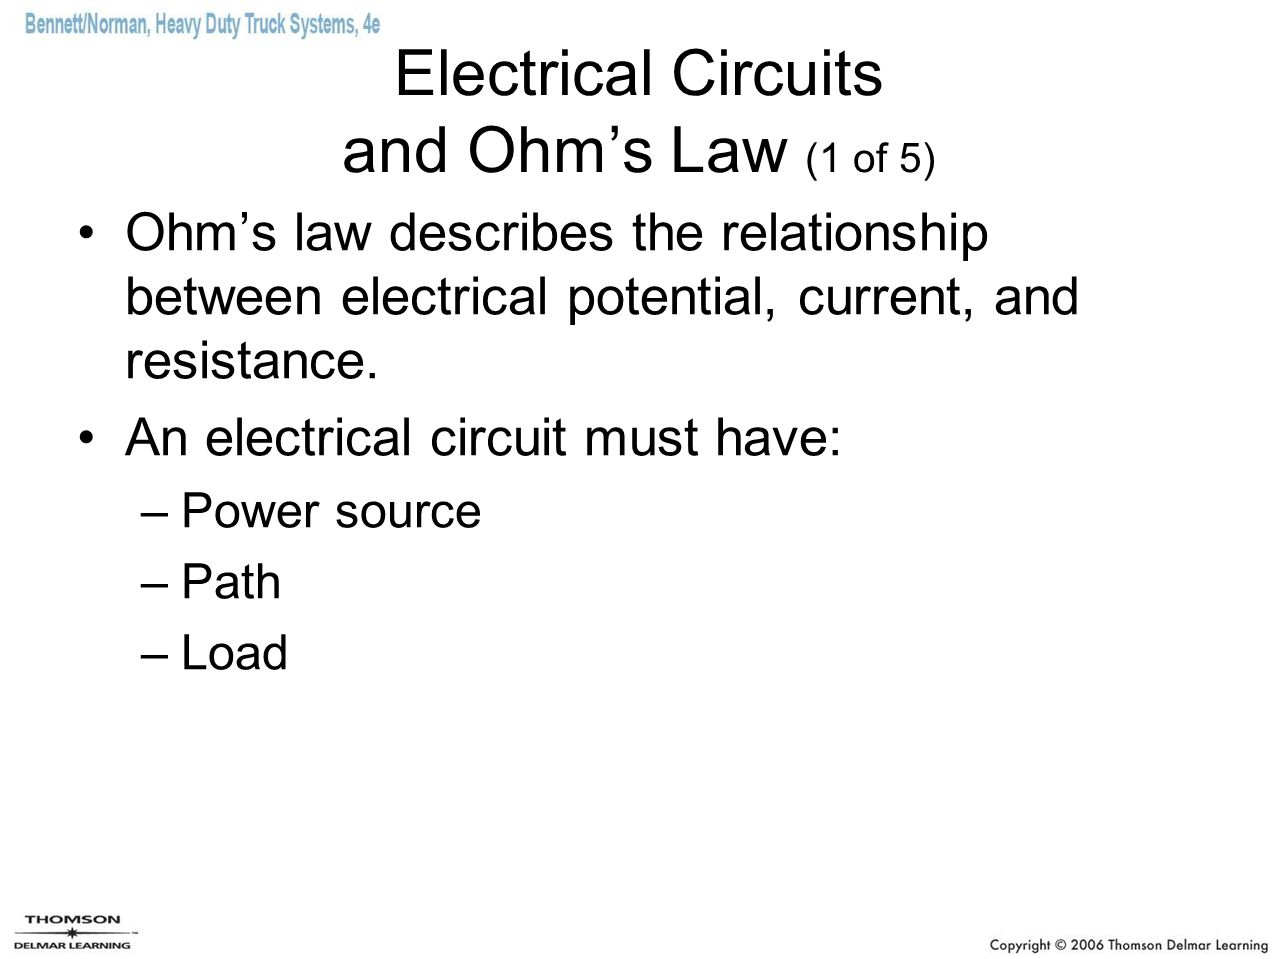 Electrical Circuits and Ohm's Law (1 of 5) Ohm's law describes the relationship between electrical potential, current, and resistance.